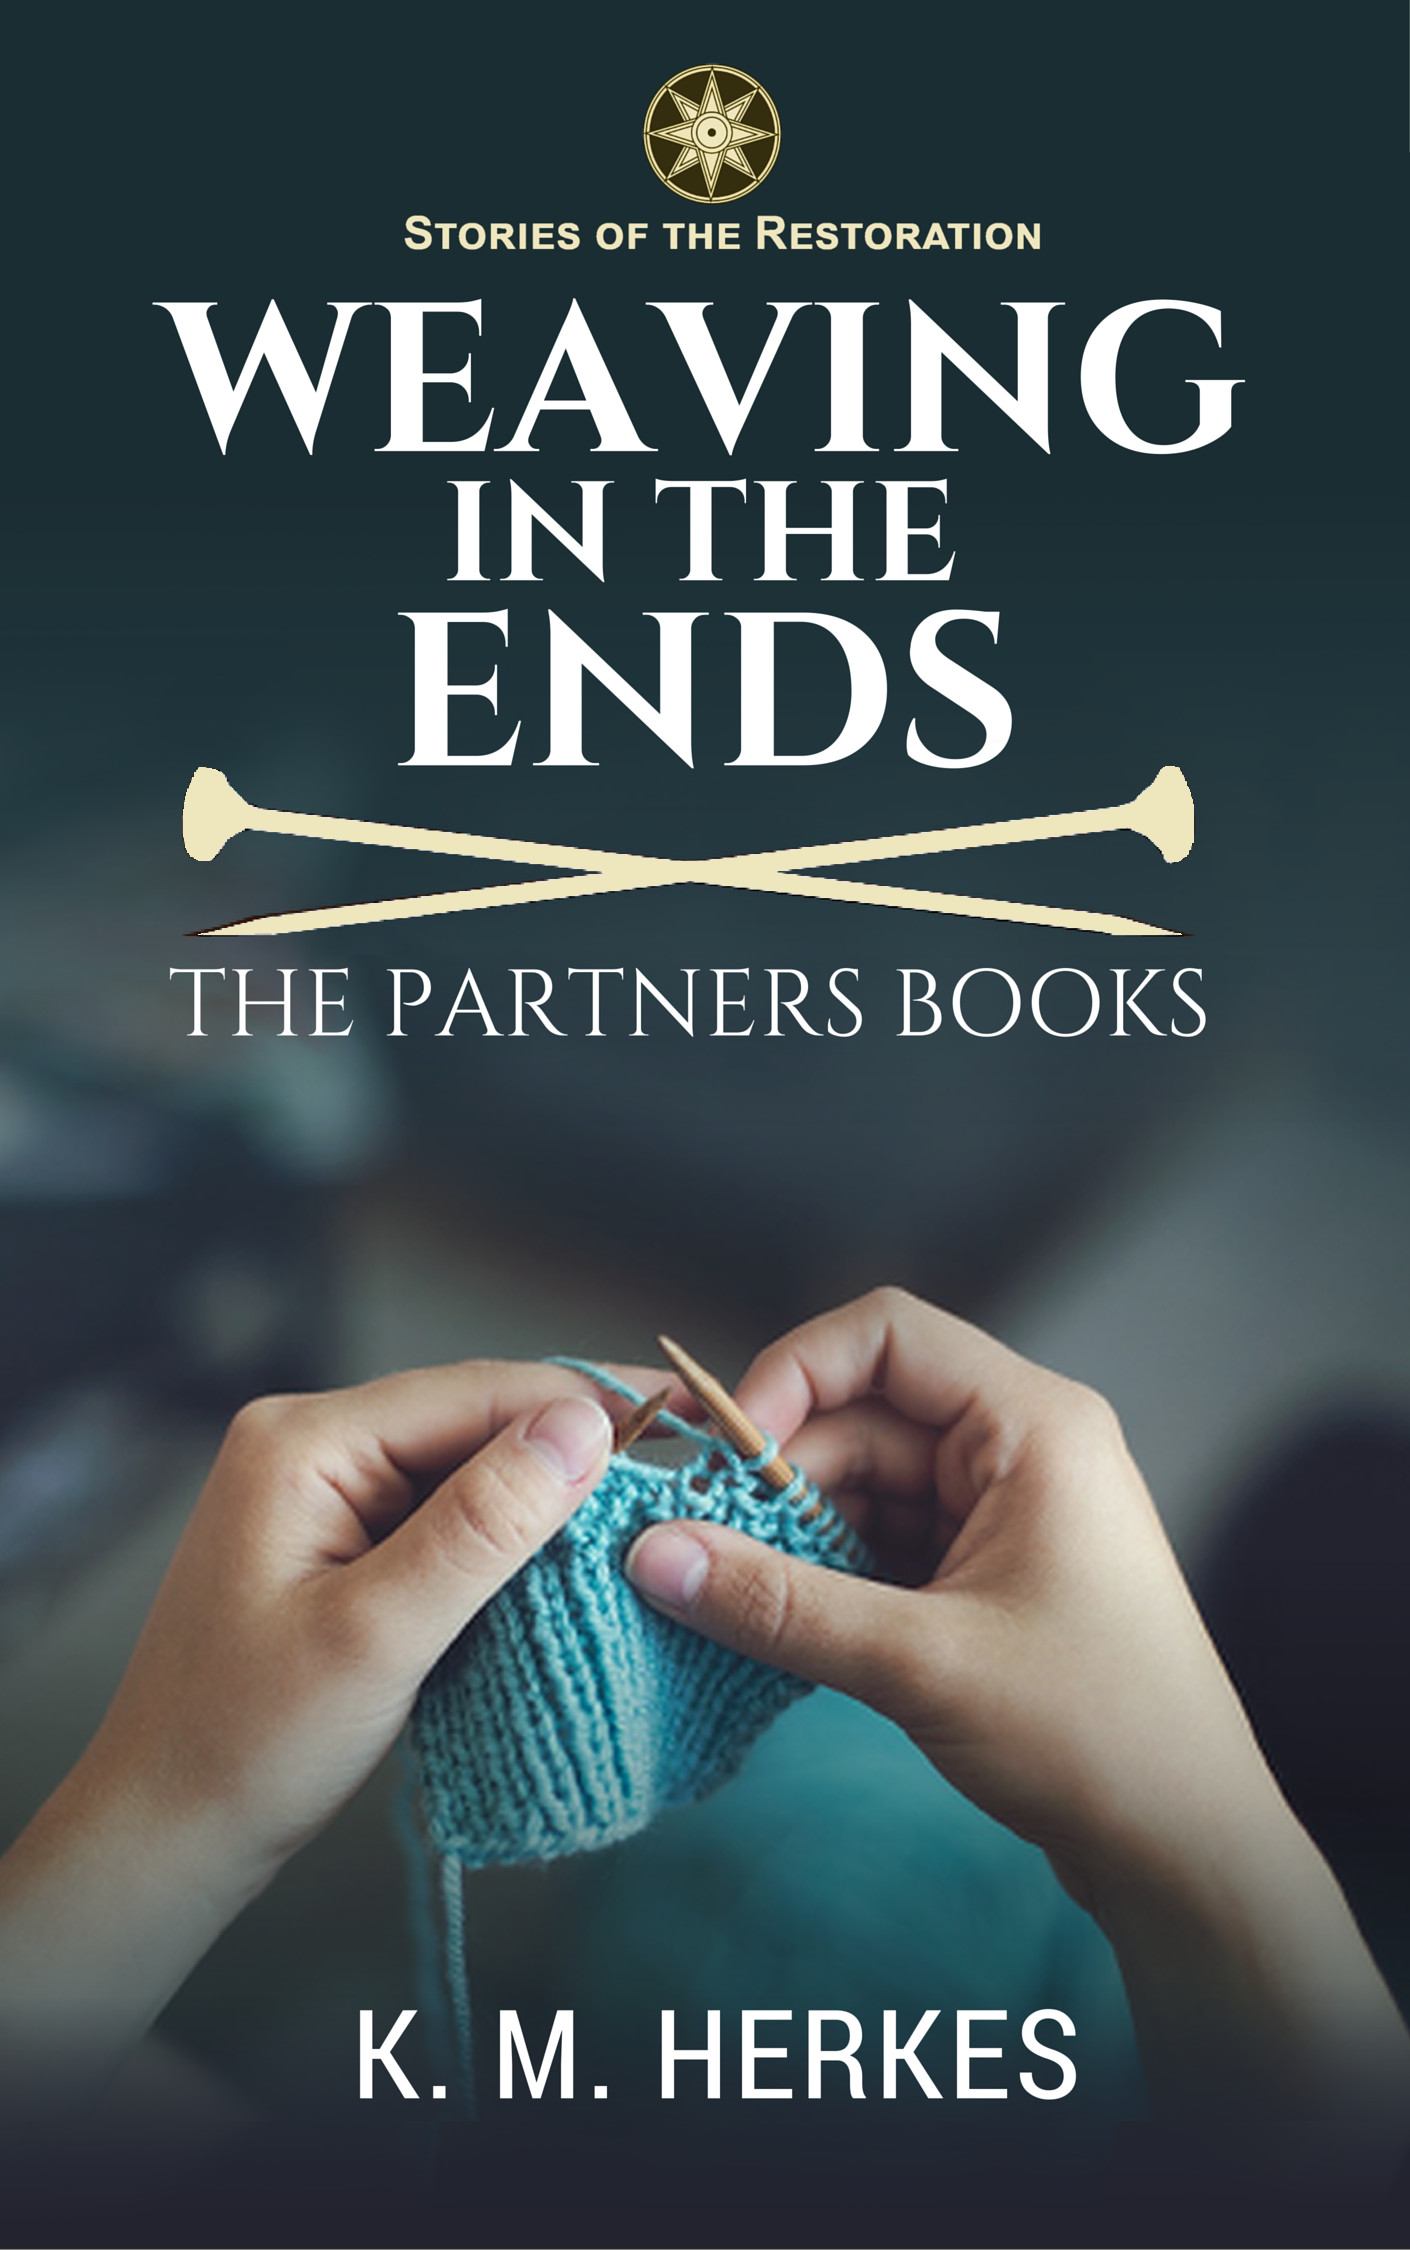 Weaving in the Ends book cover